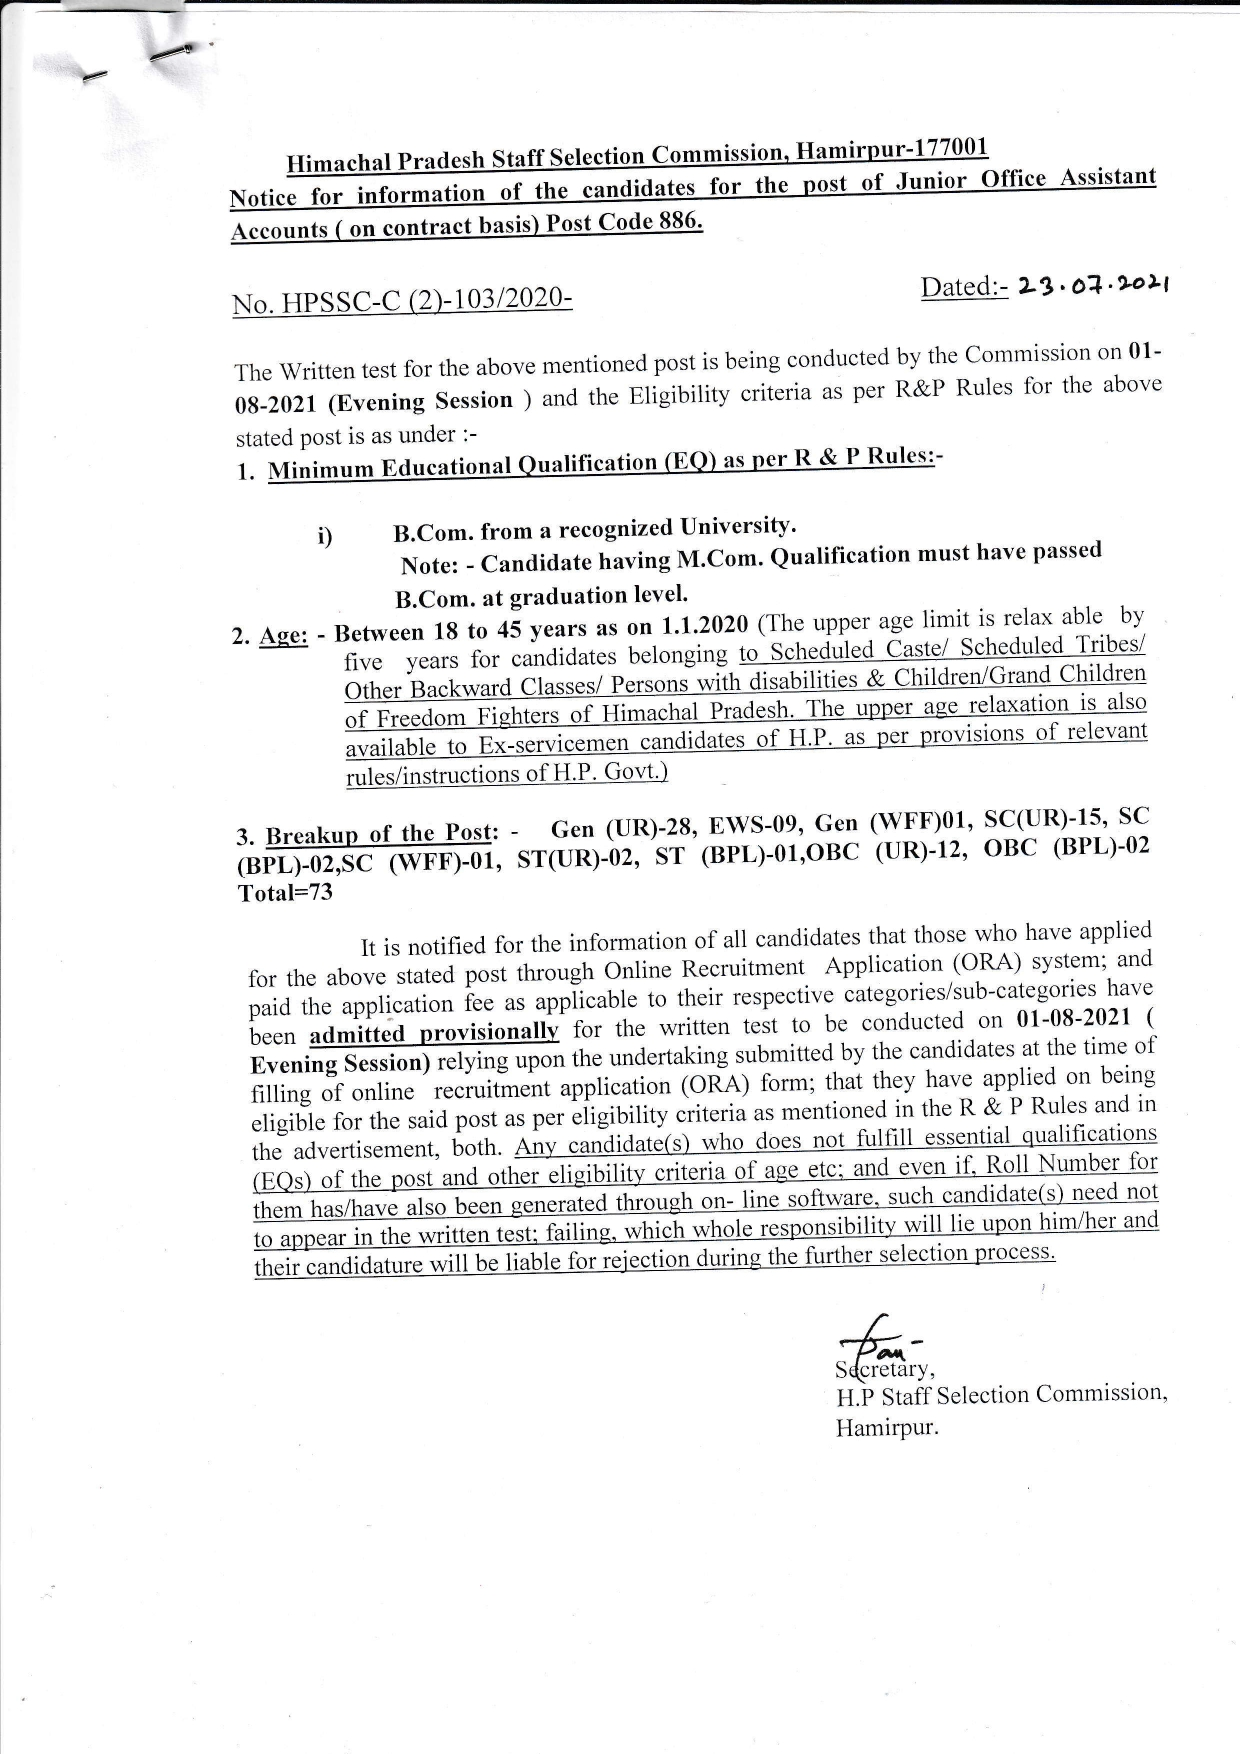 Important Notice For The Post of JOA Accounts Post Code 886-HPSSC Hamirpur